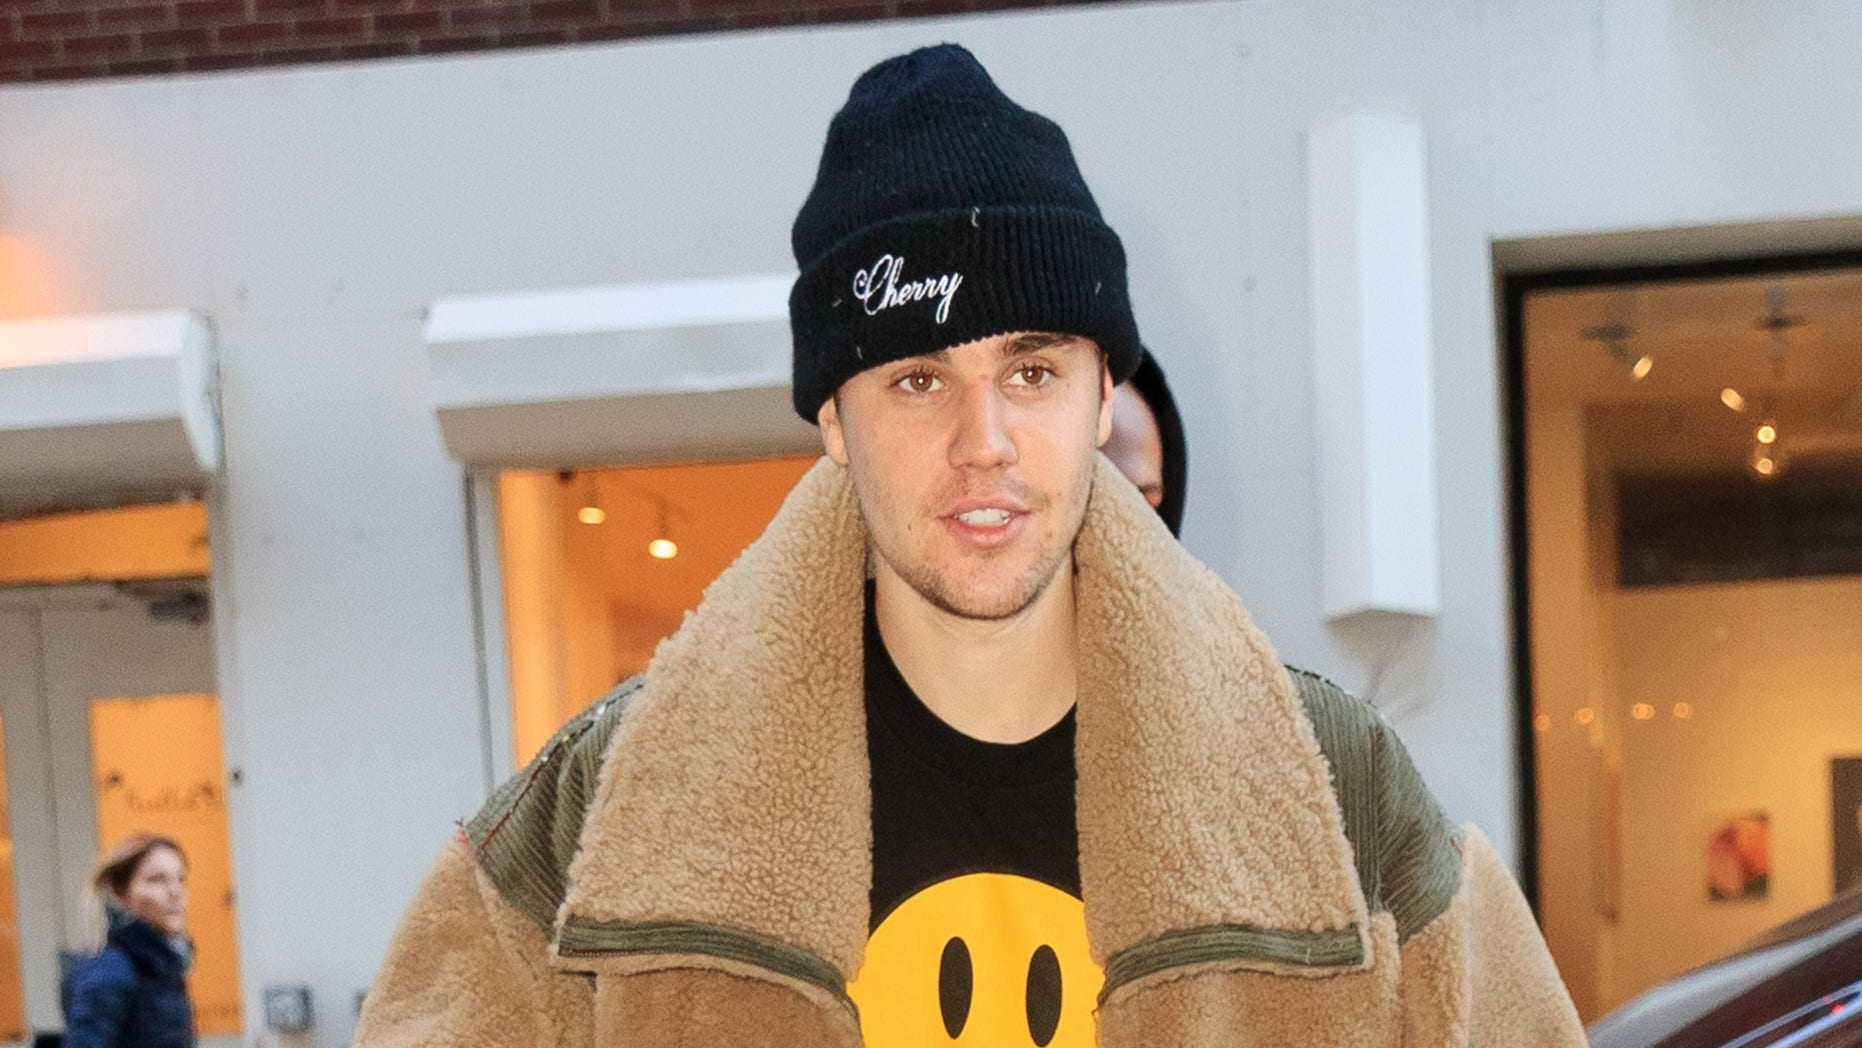 Justin Bieber suggested he's been struggling a lot lately.